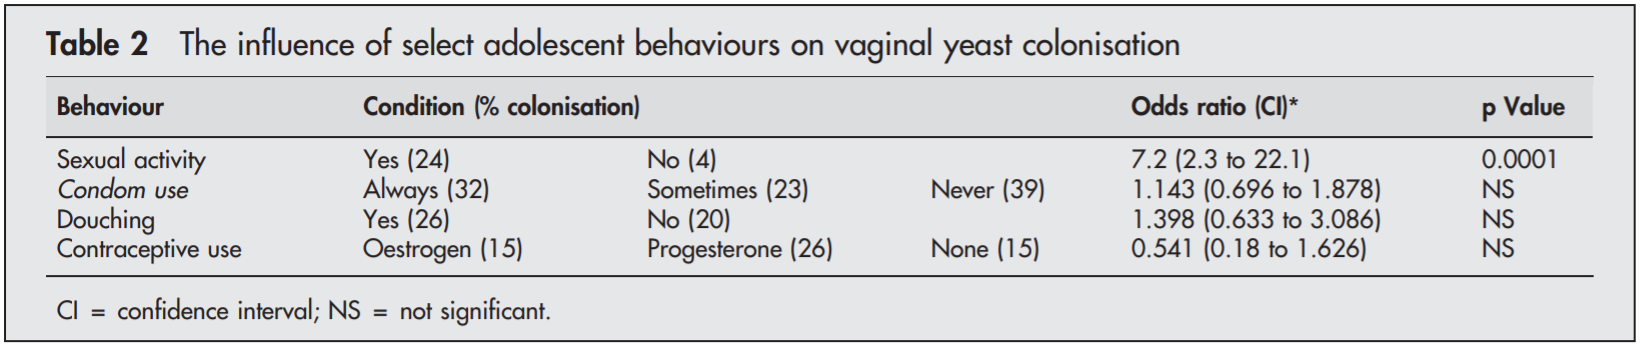 This chart shows the relationship between various behaviors and vaginal yeast colonization.  As you can see, there is not a significant correlation between condom use and this type of vaginal colonization of Candida.